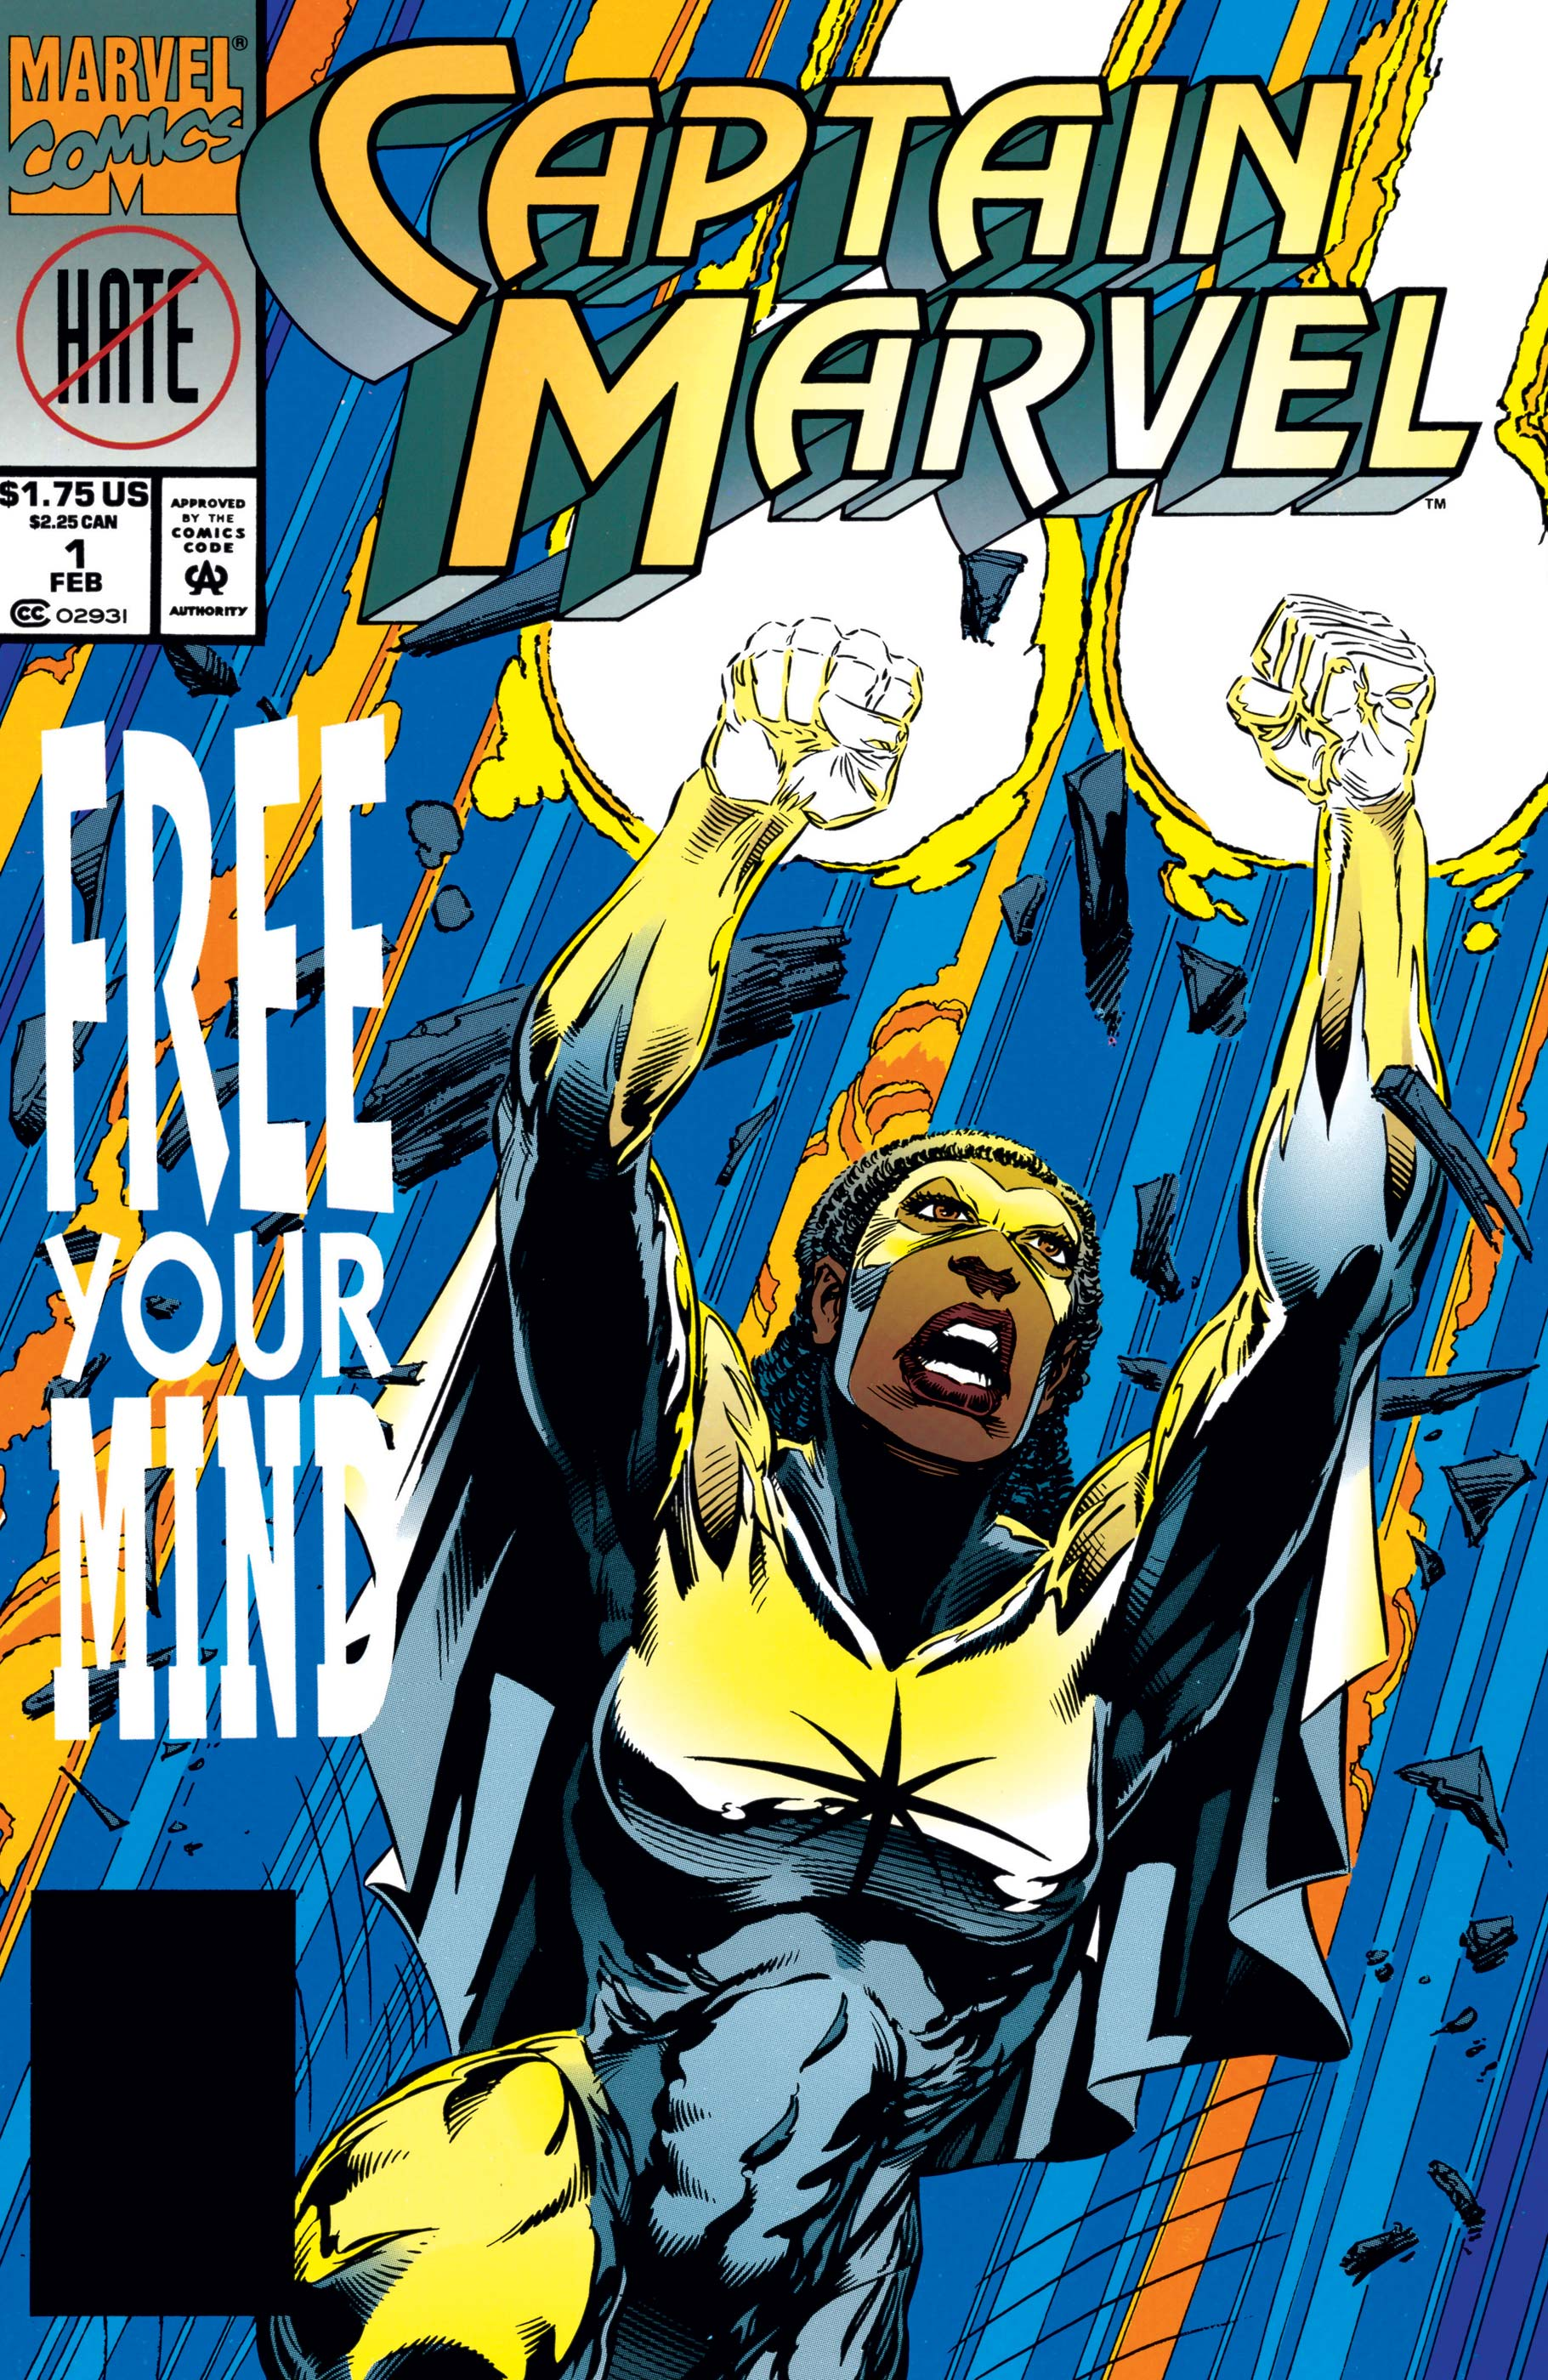 Captain Marvel (1994) #1